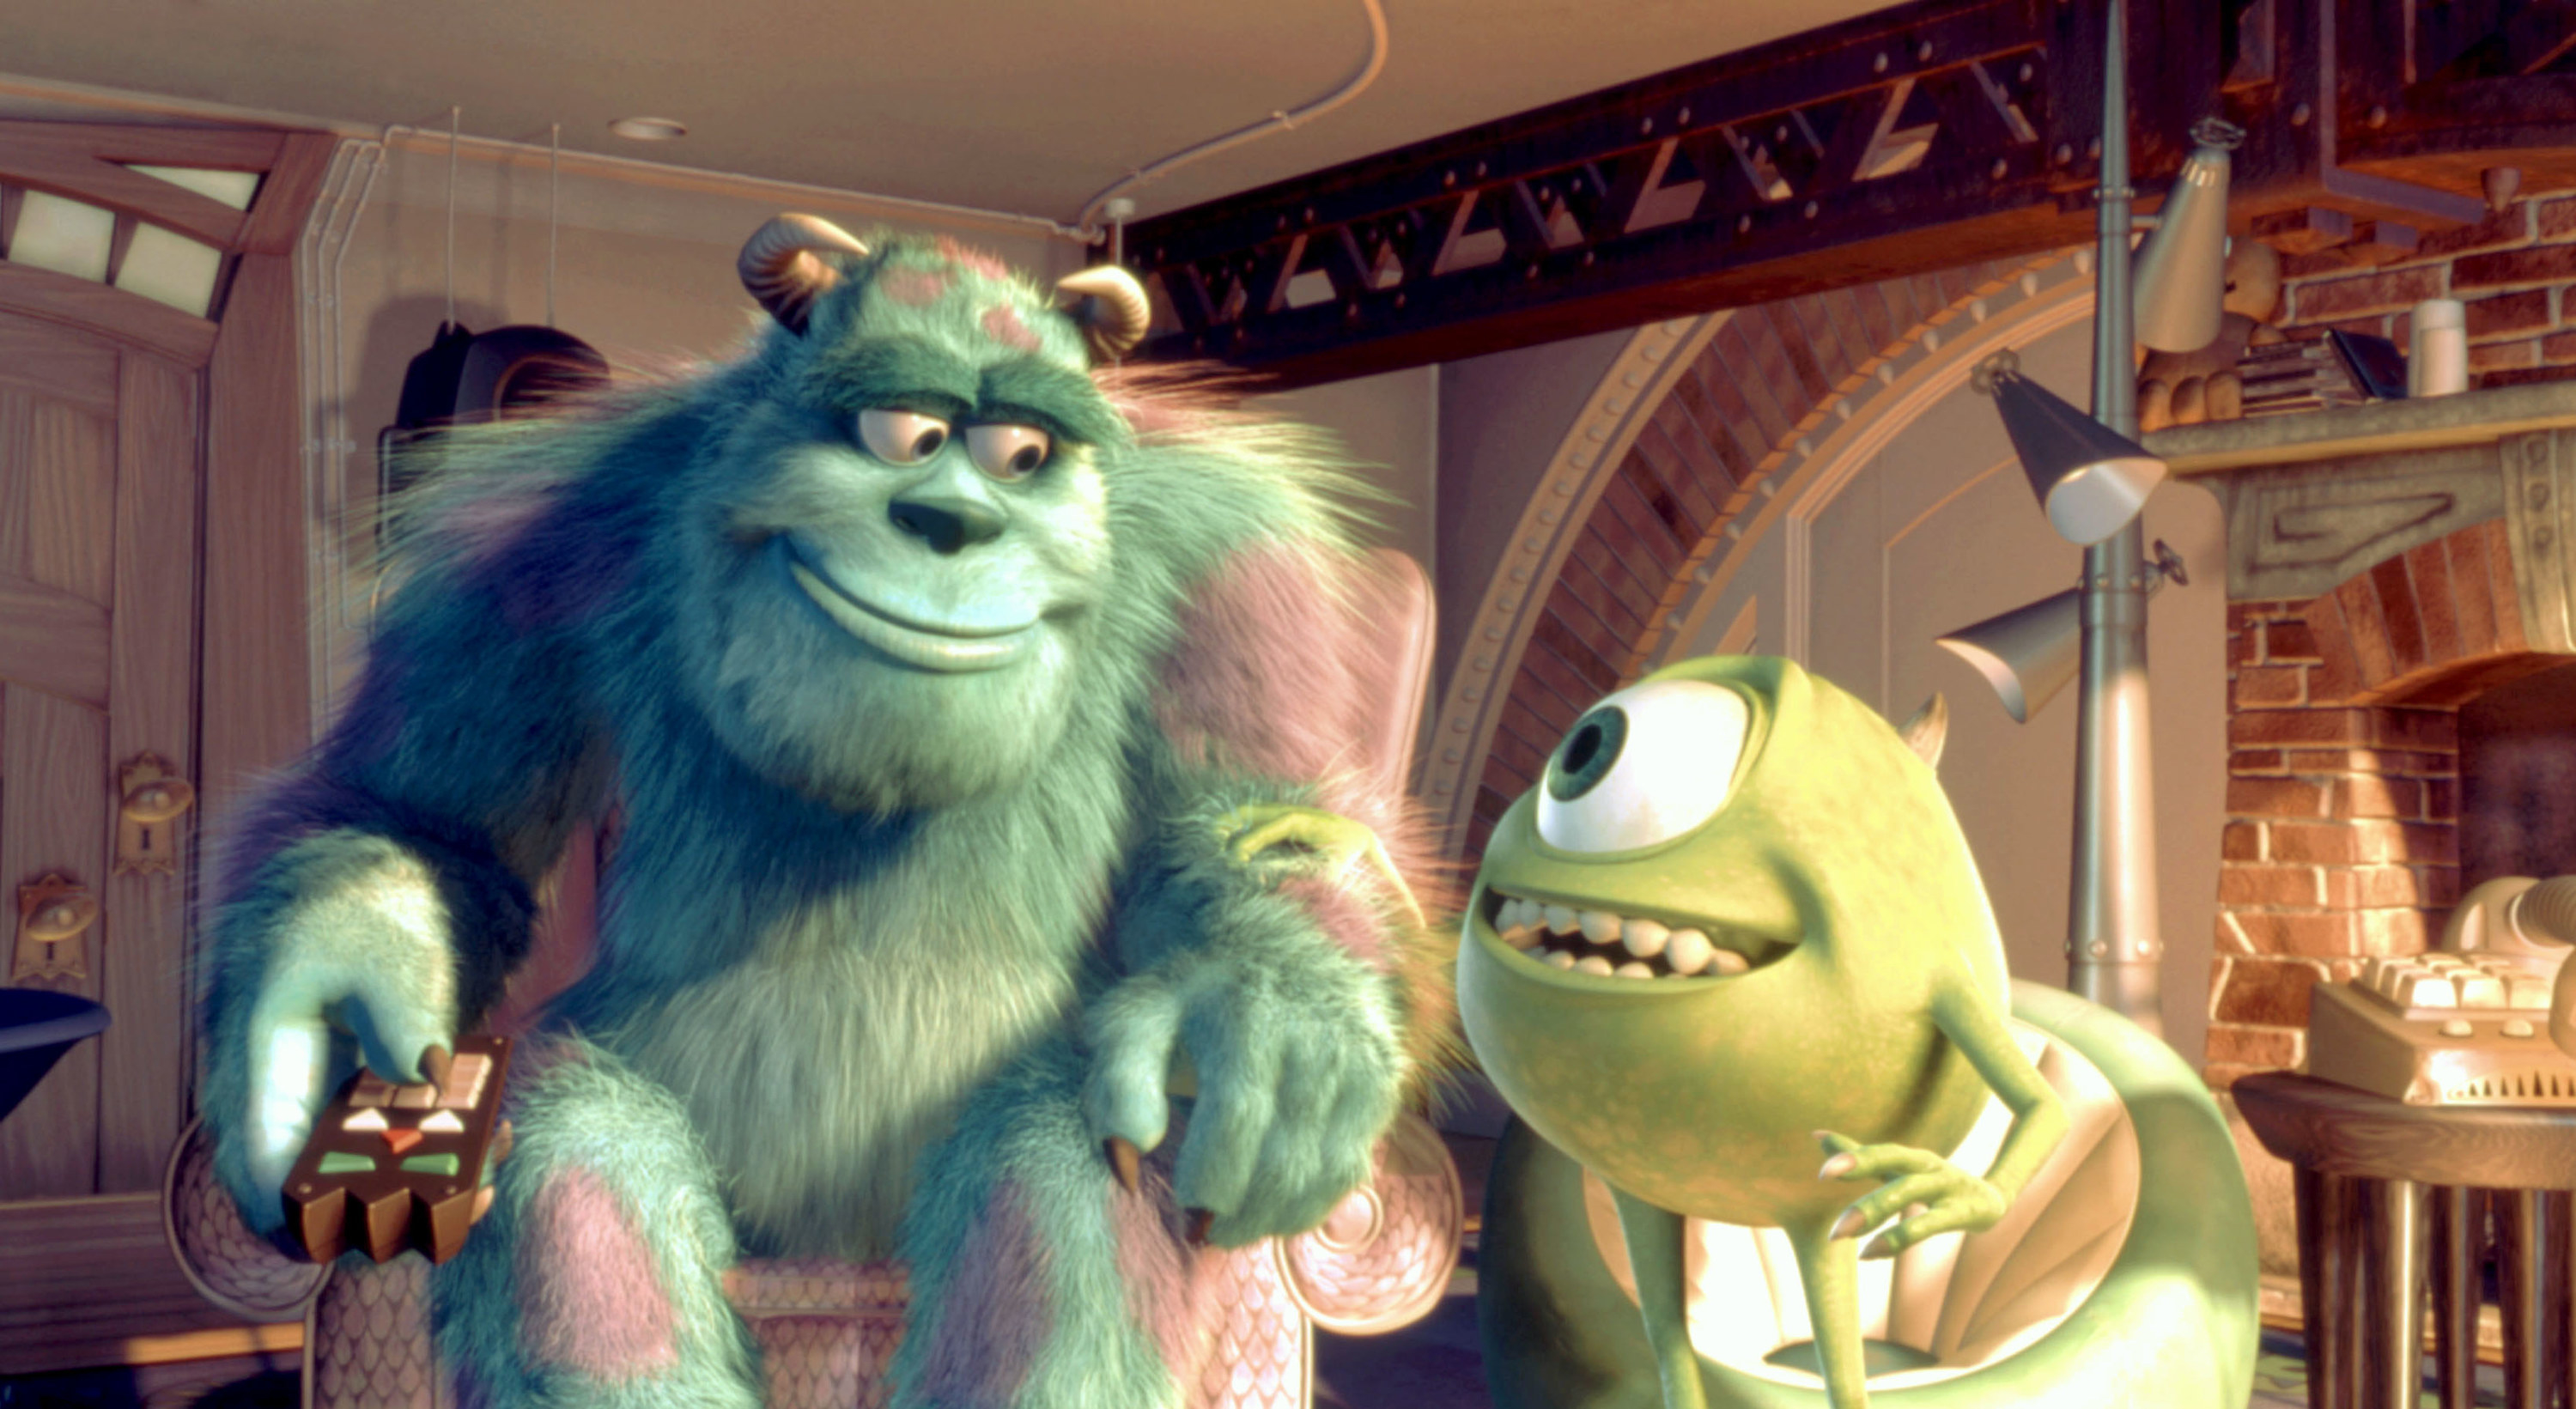 Sulley and Mike Wazowski smiling at each other while watching TV